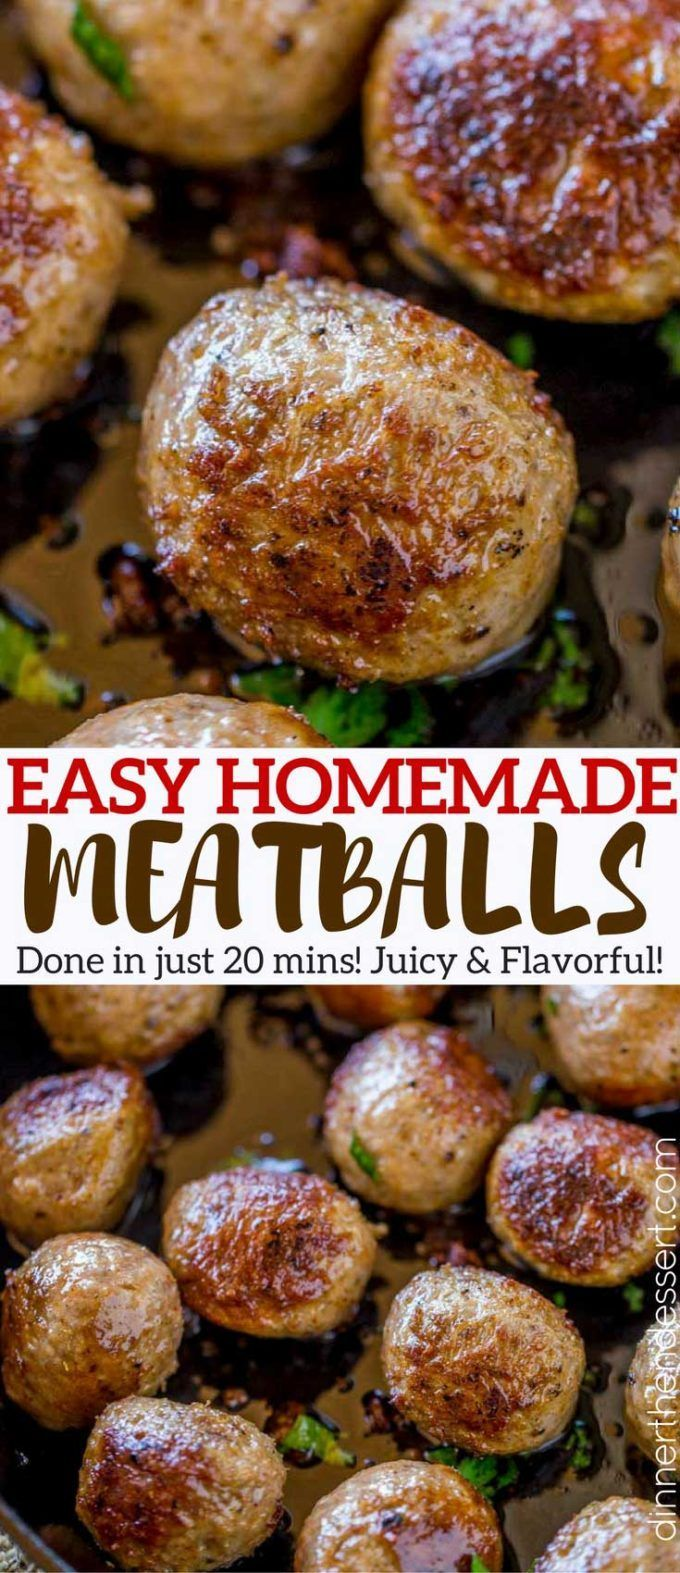 Easy Homemade Meatballs made in just 20 minutes that are moist, crispy on the outside and fluffy on the inside. Perfect for all your meatball recipes, and easy to freeze!